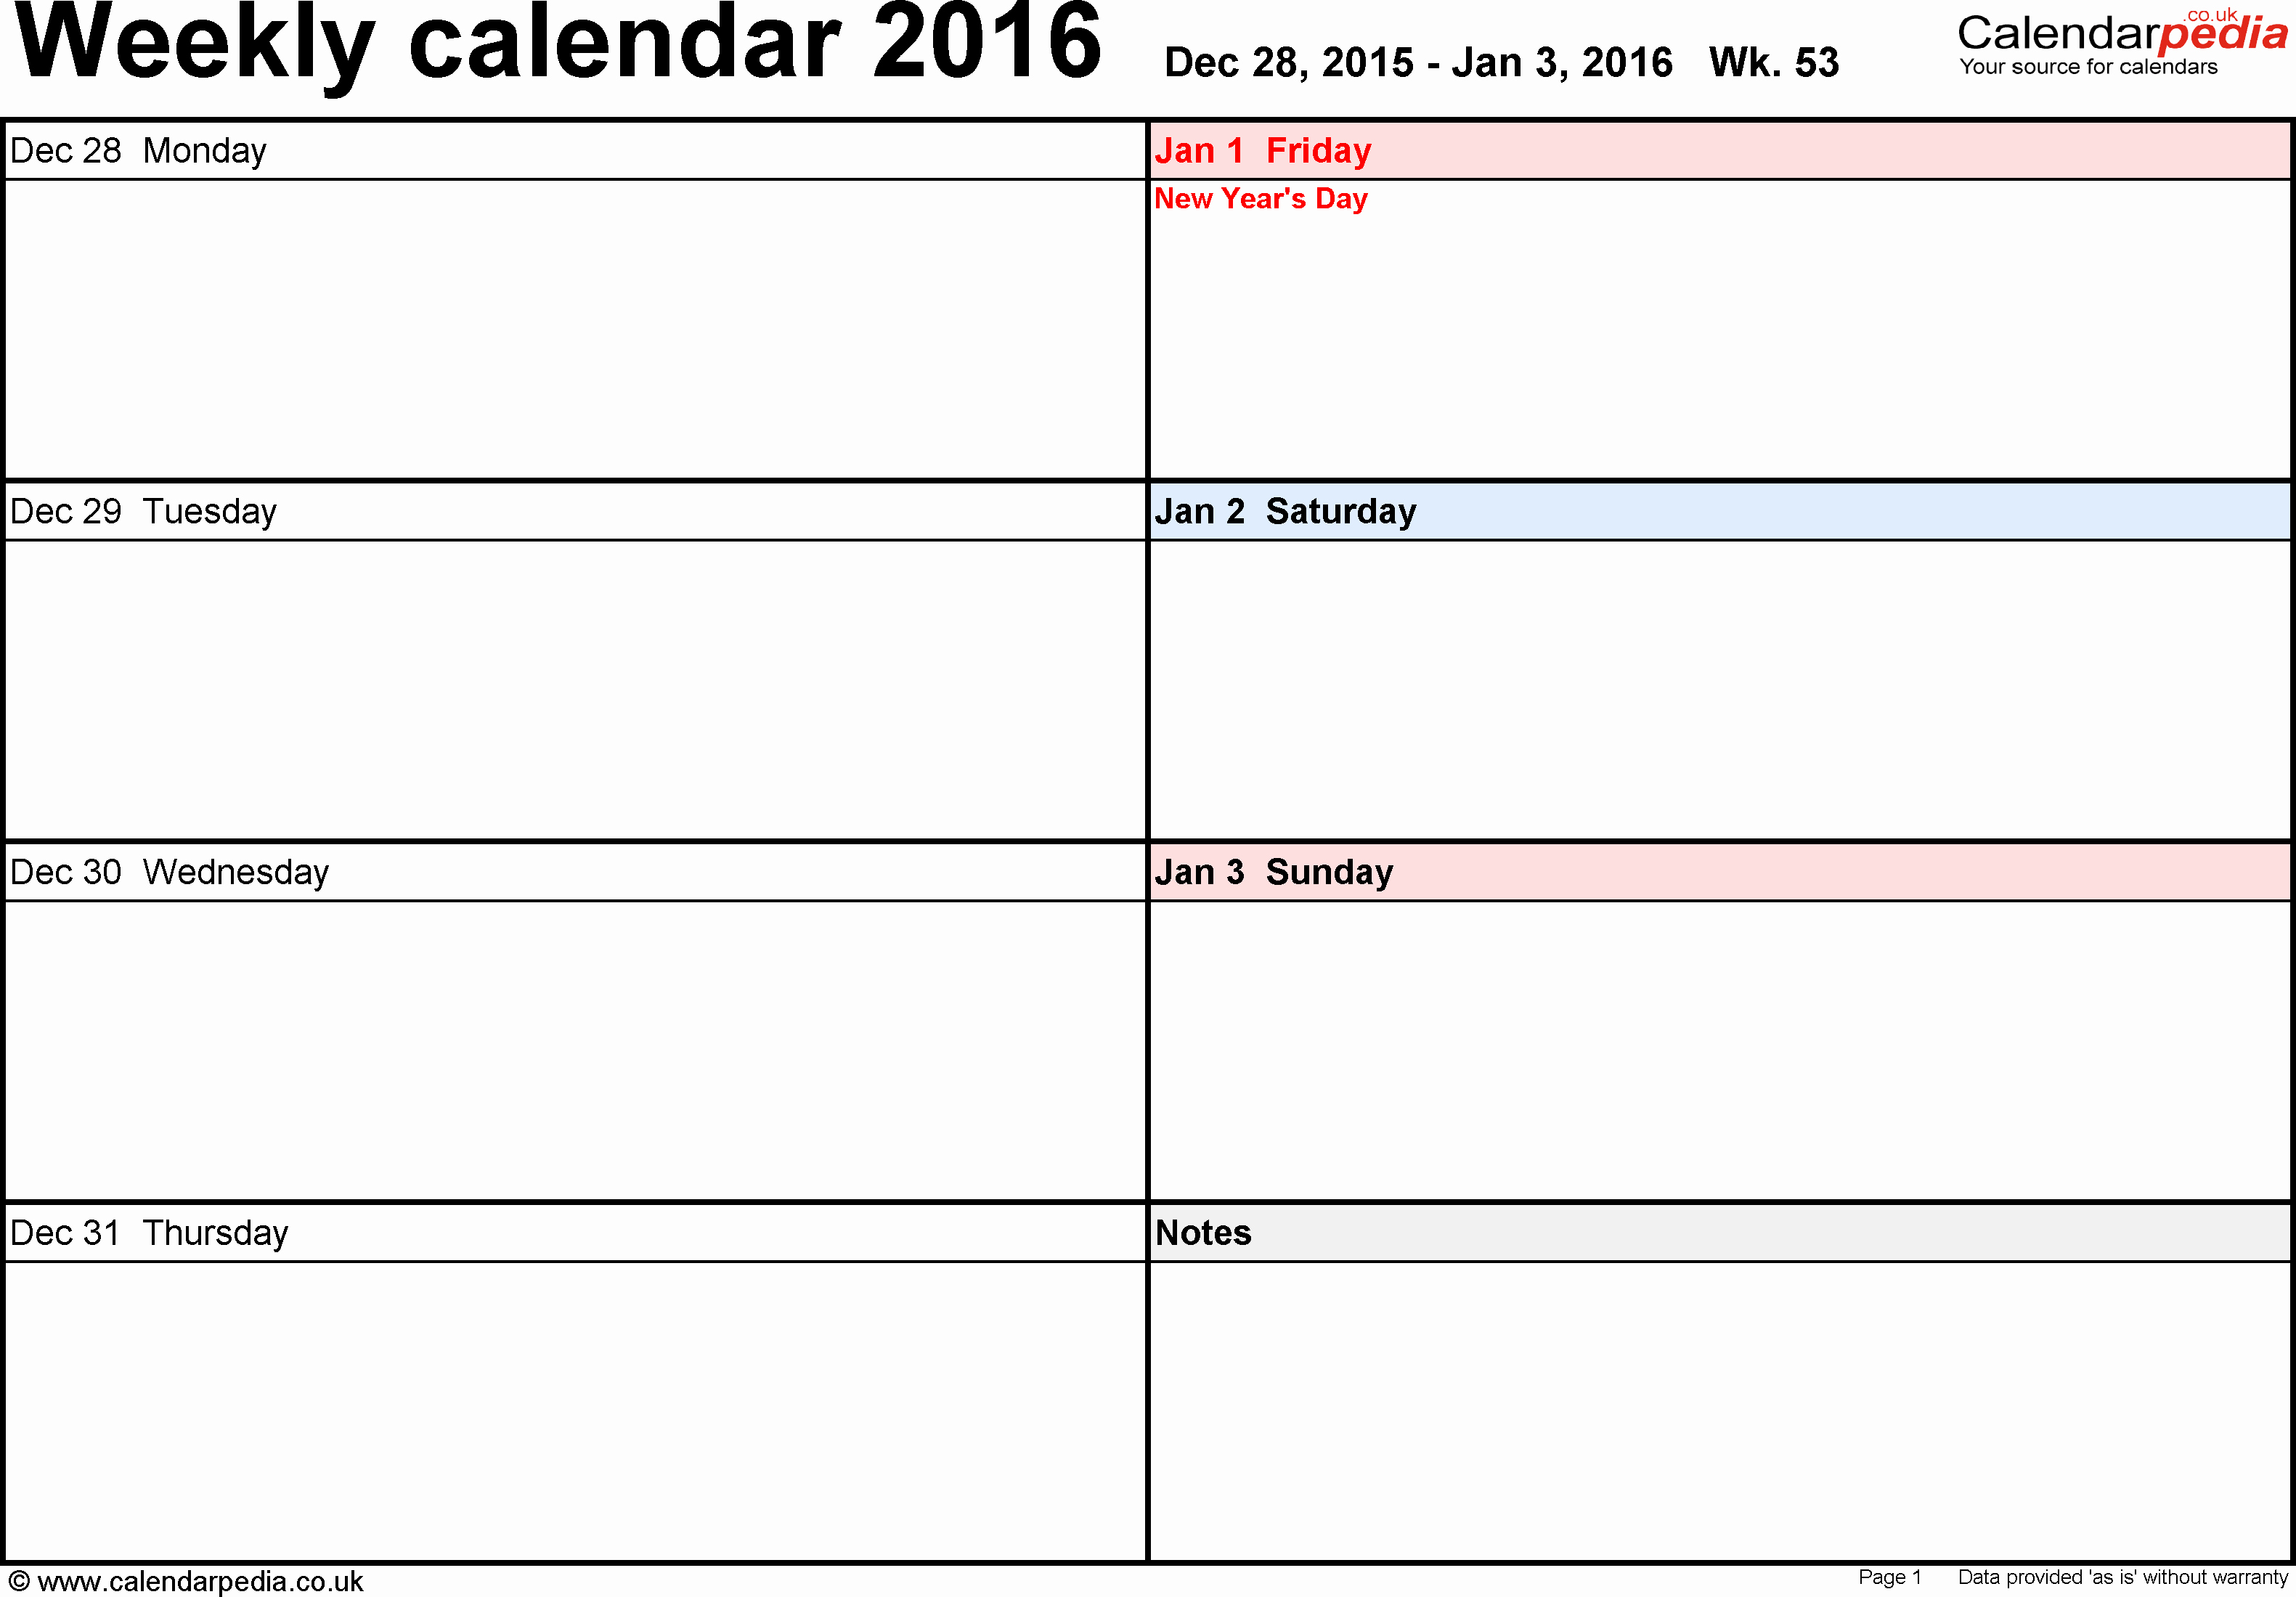 Week by Week Calendar Template Lovely Weekly Calendar 2016 Uk Free Printable Templates for Word